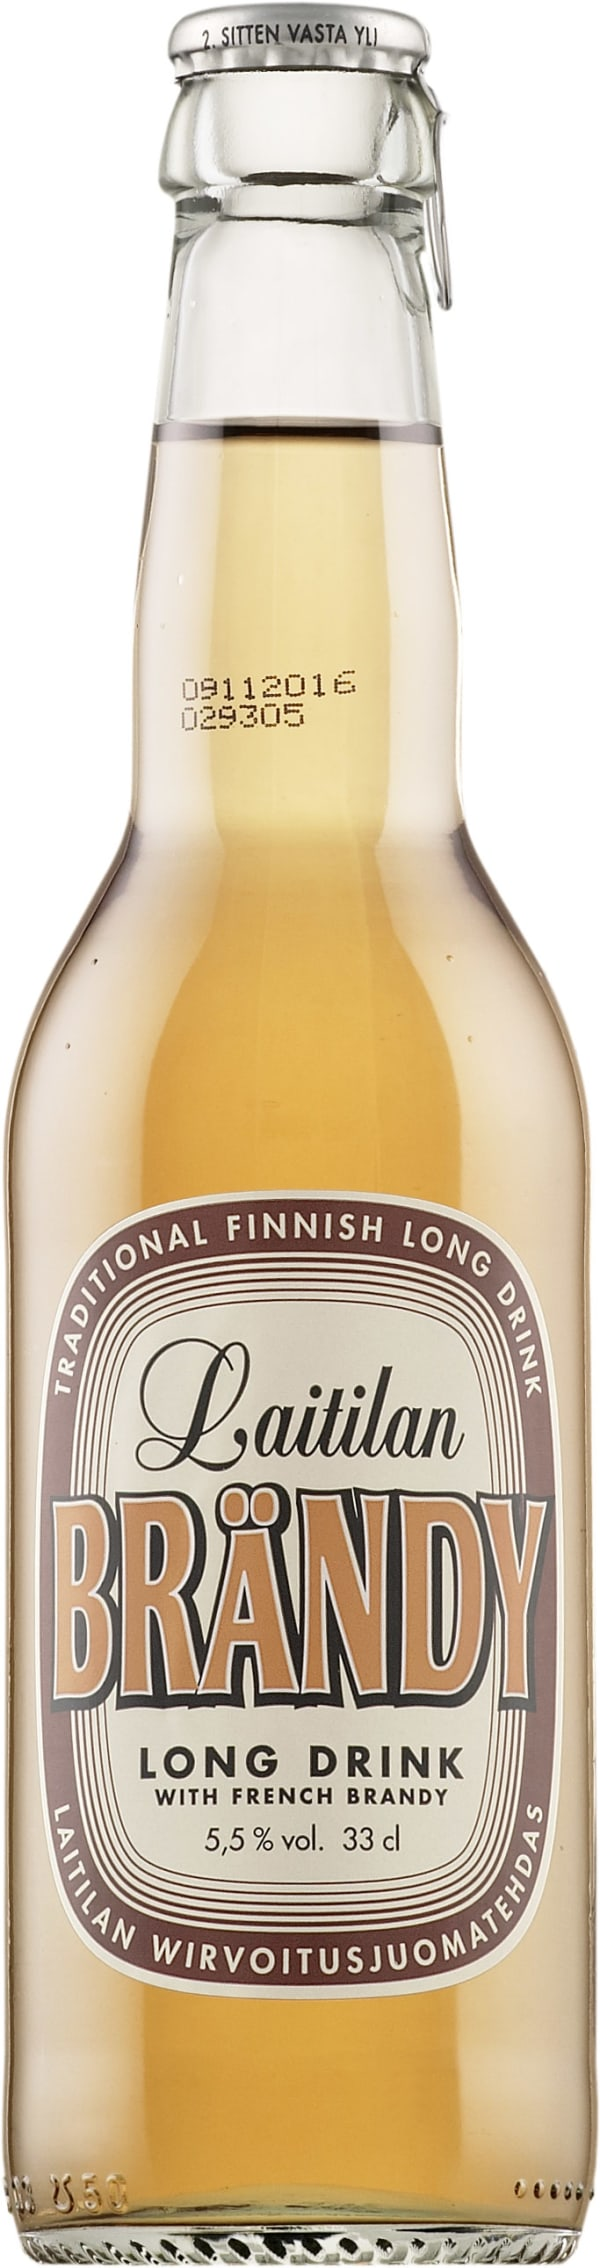 Laitilan Brändy Long Drink